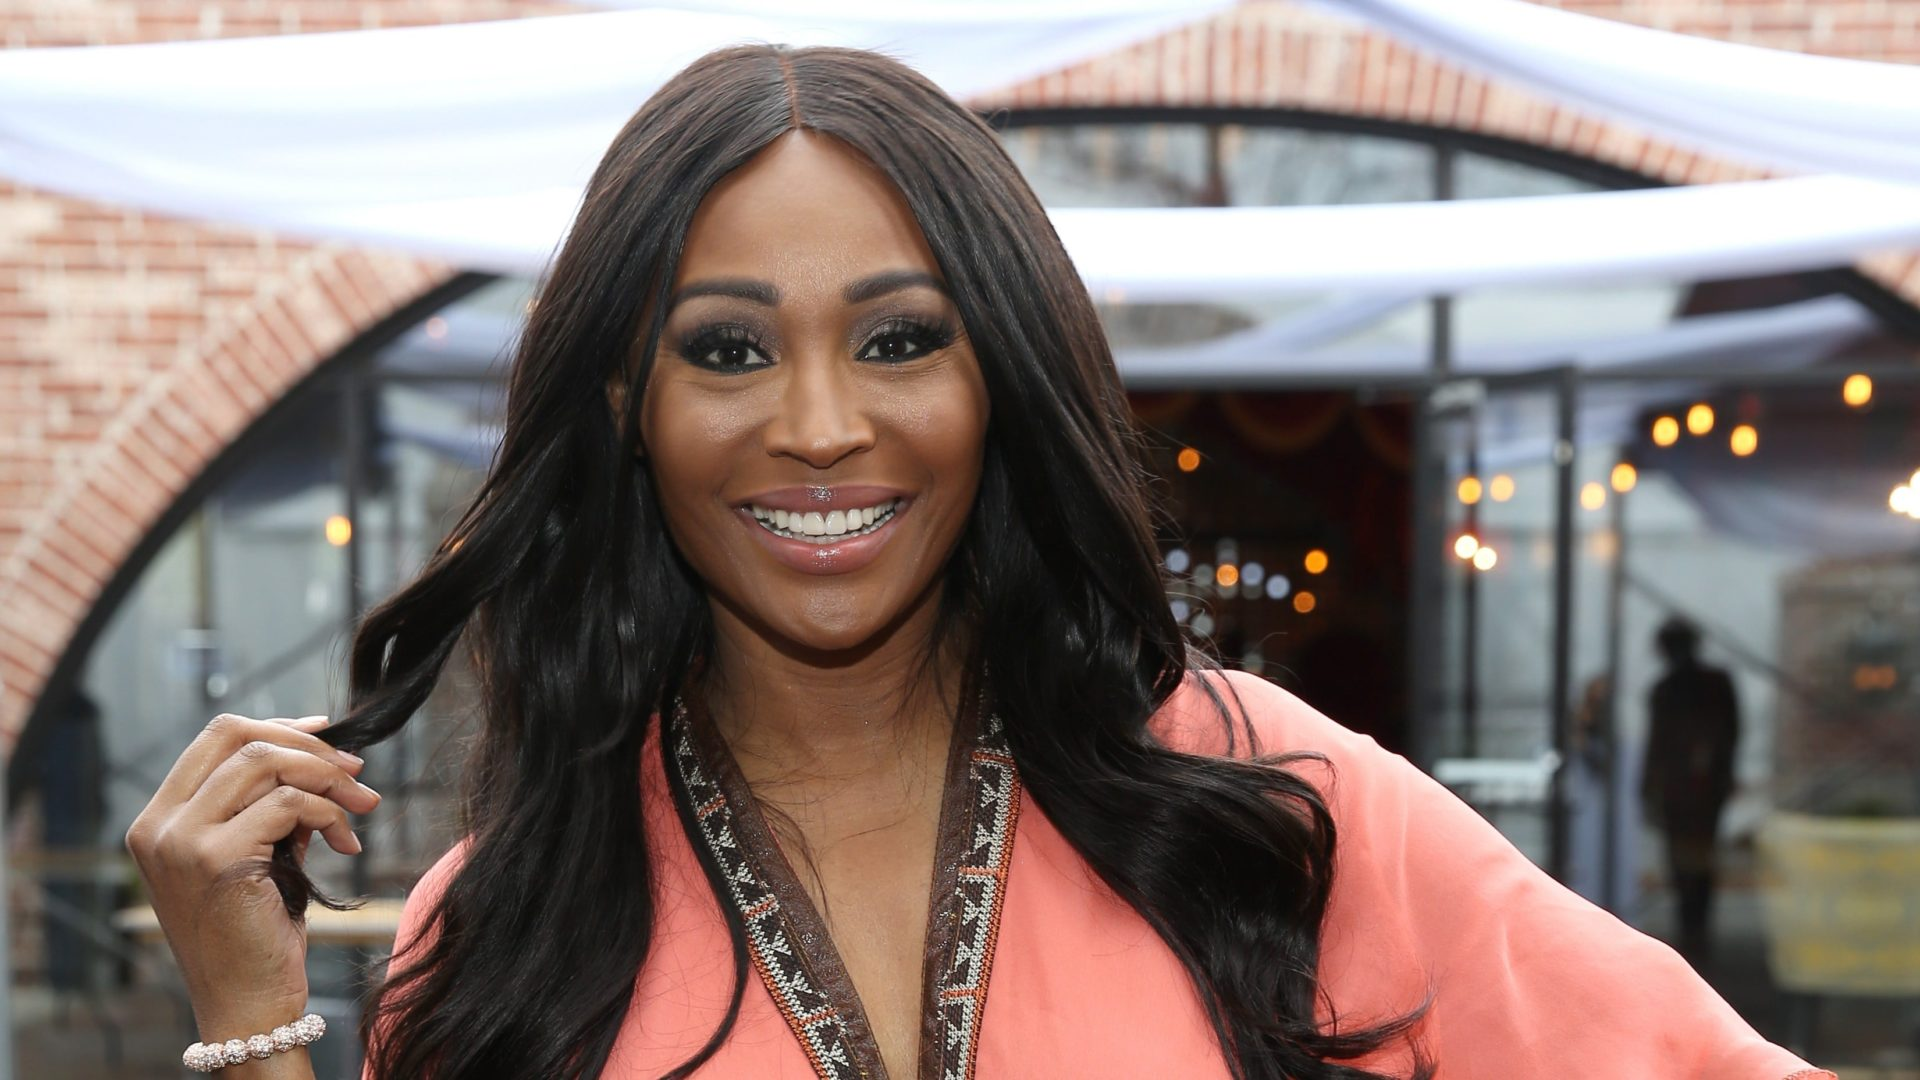 Cynthia Bailey Impresses Fans With Her Natural Thanksgiving Look - See Her Gorgeous Makeup Here